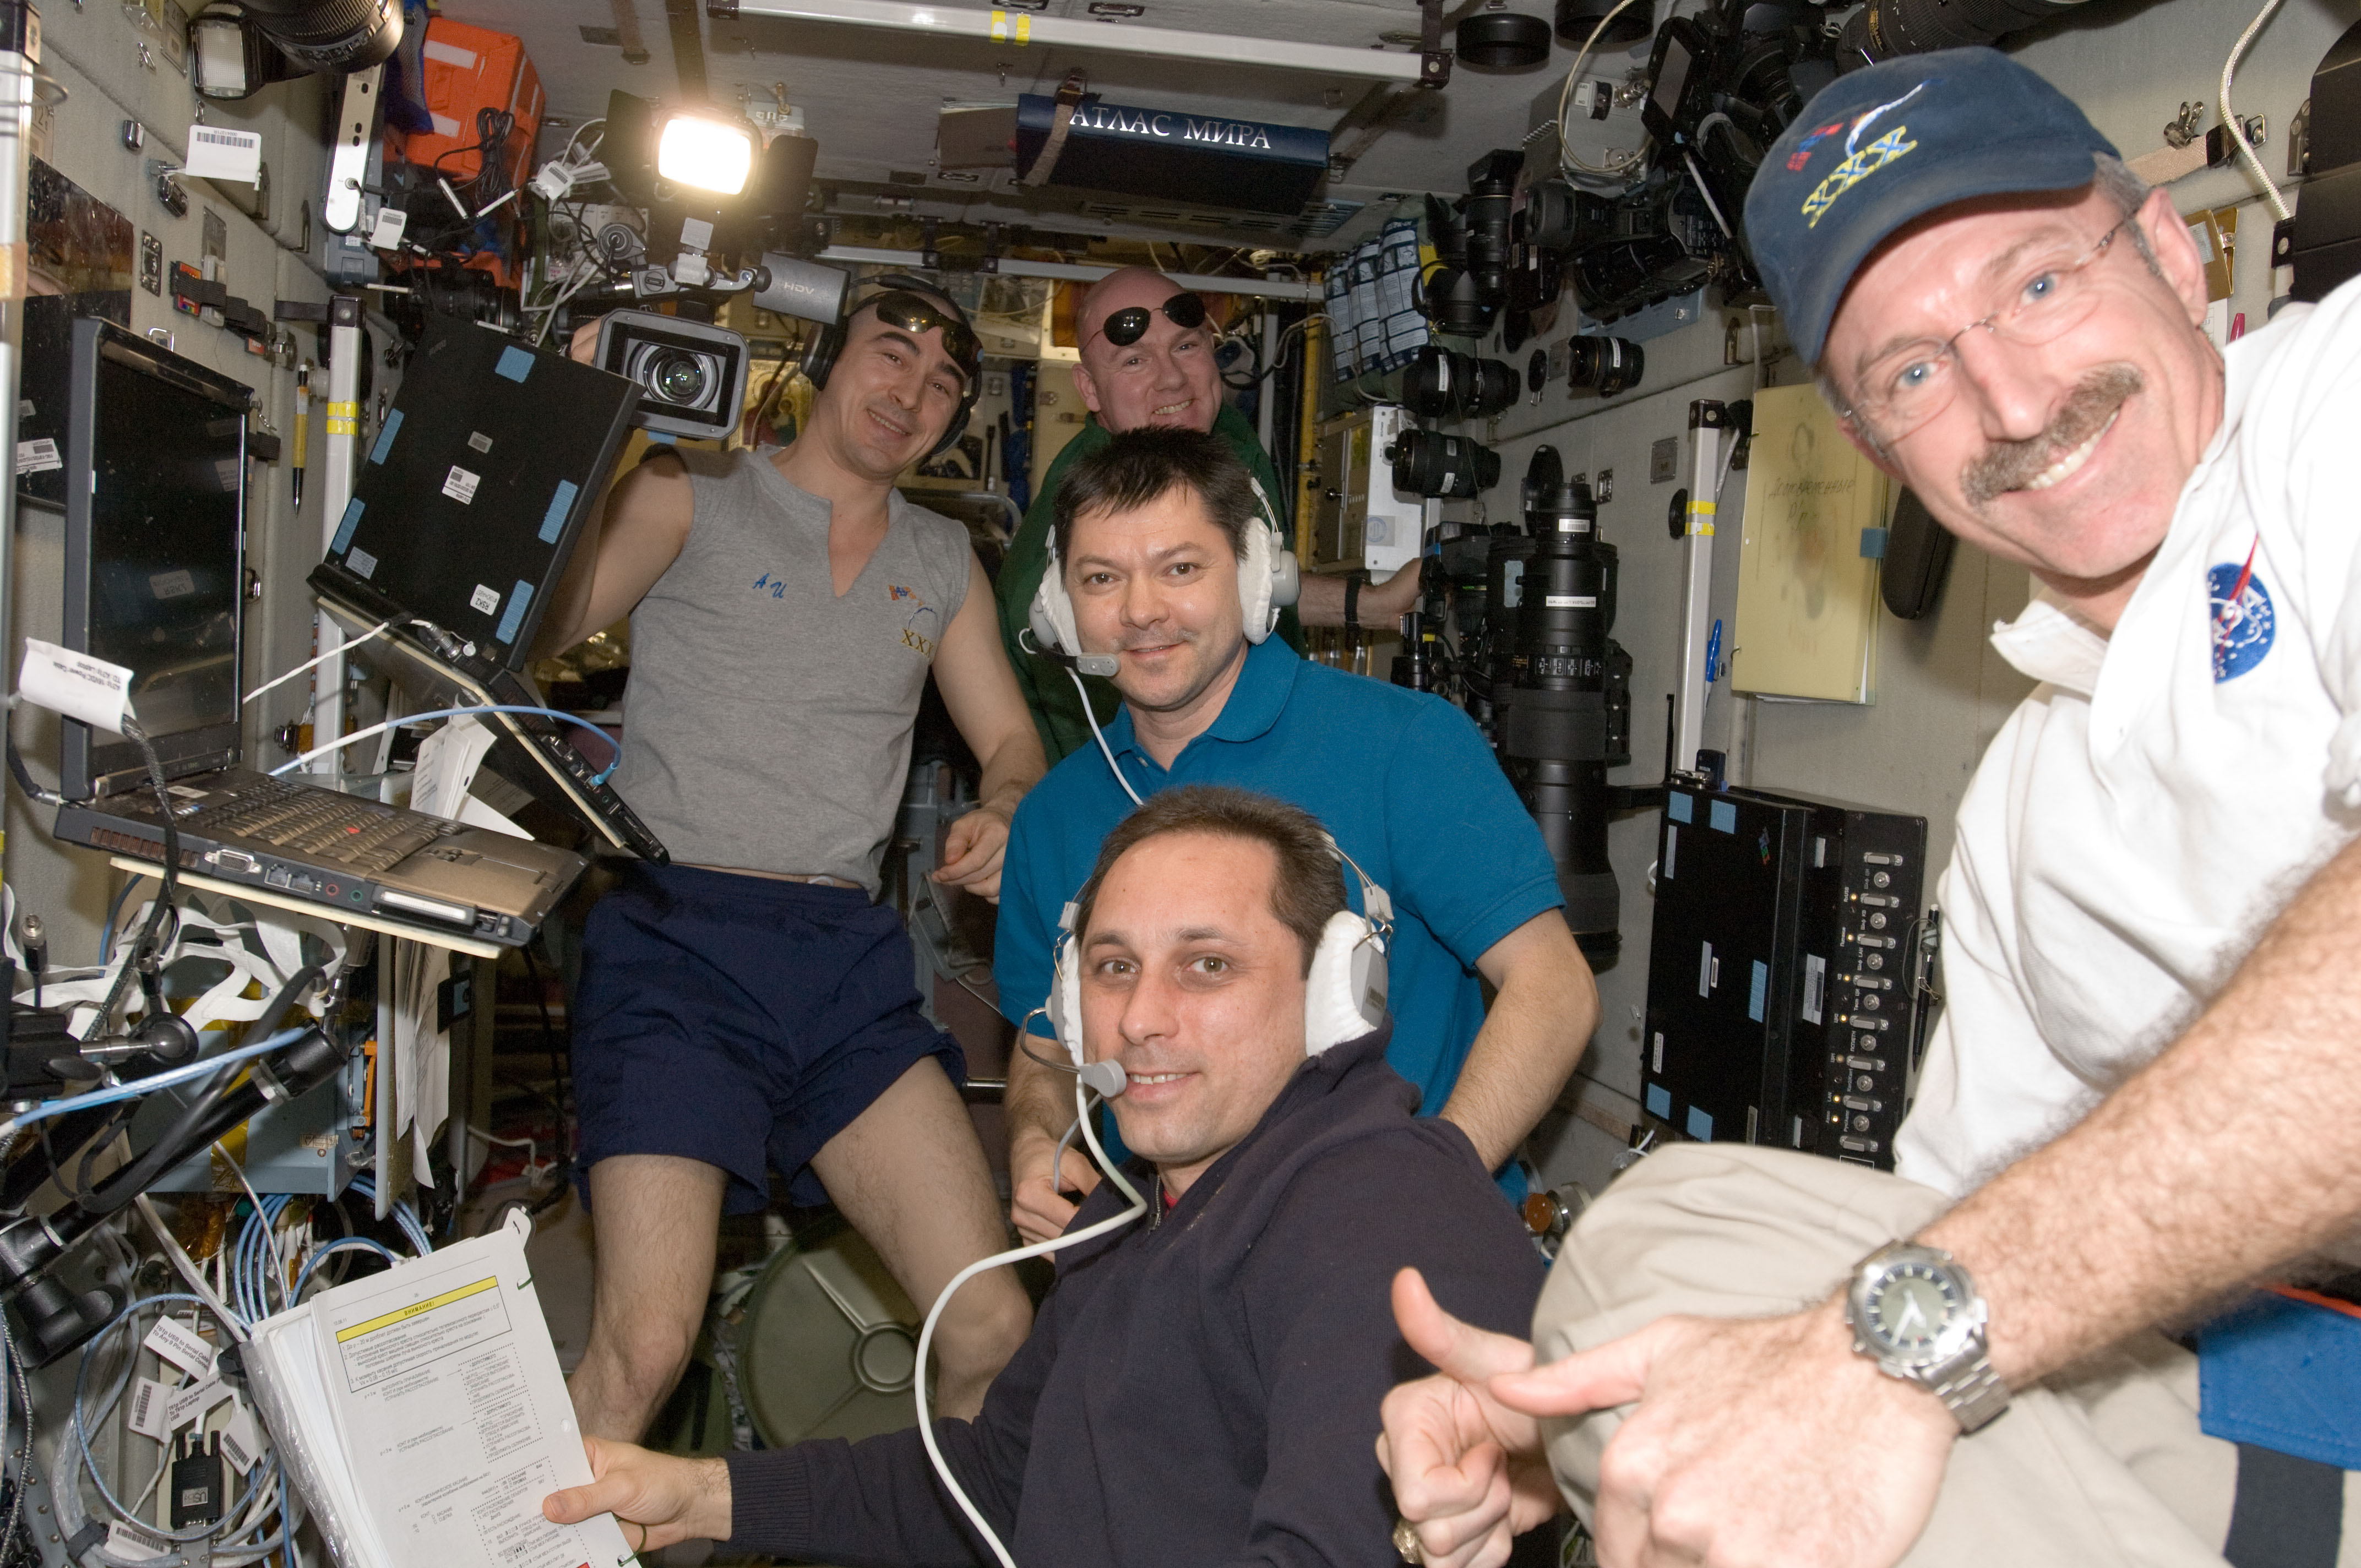 File Expedition 30 Crew In The Zvezda Module After Successful Docking Of Progress M